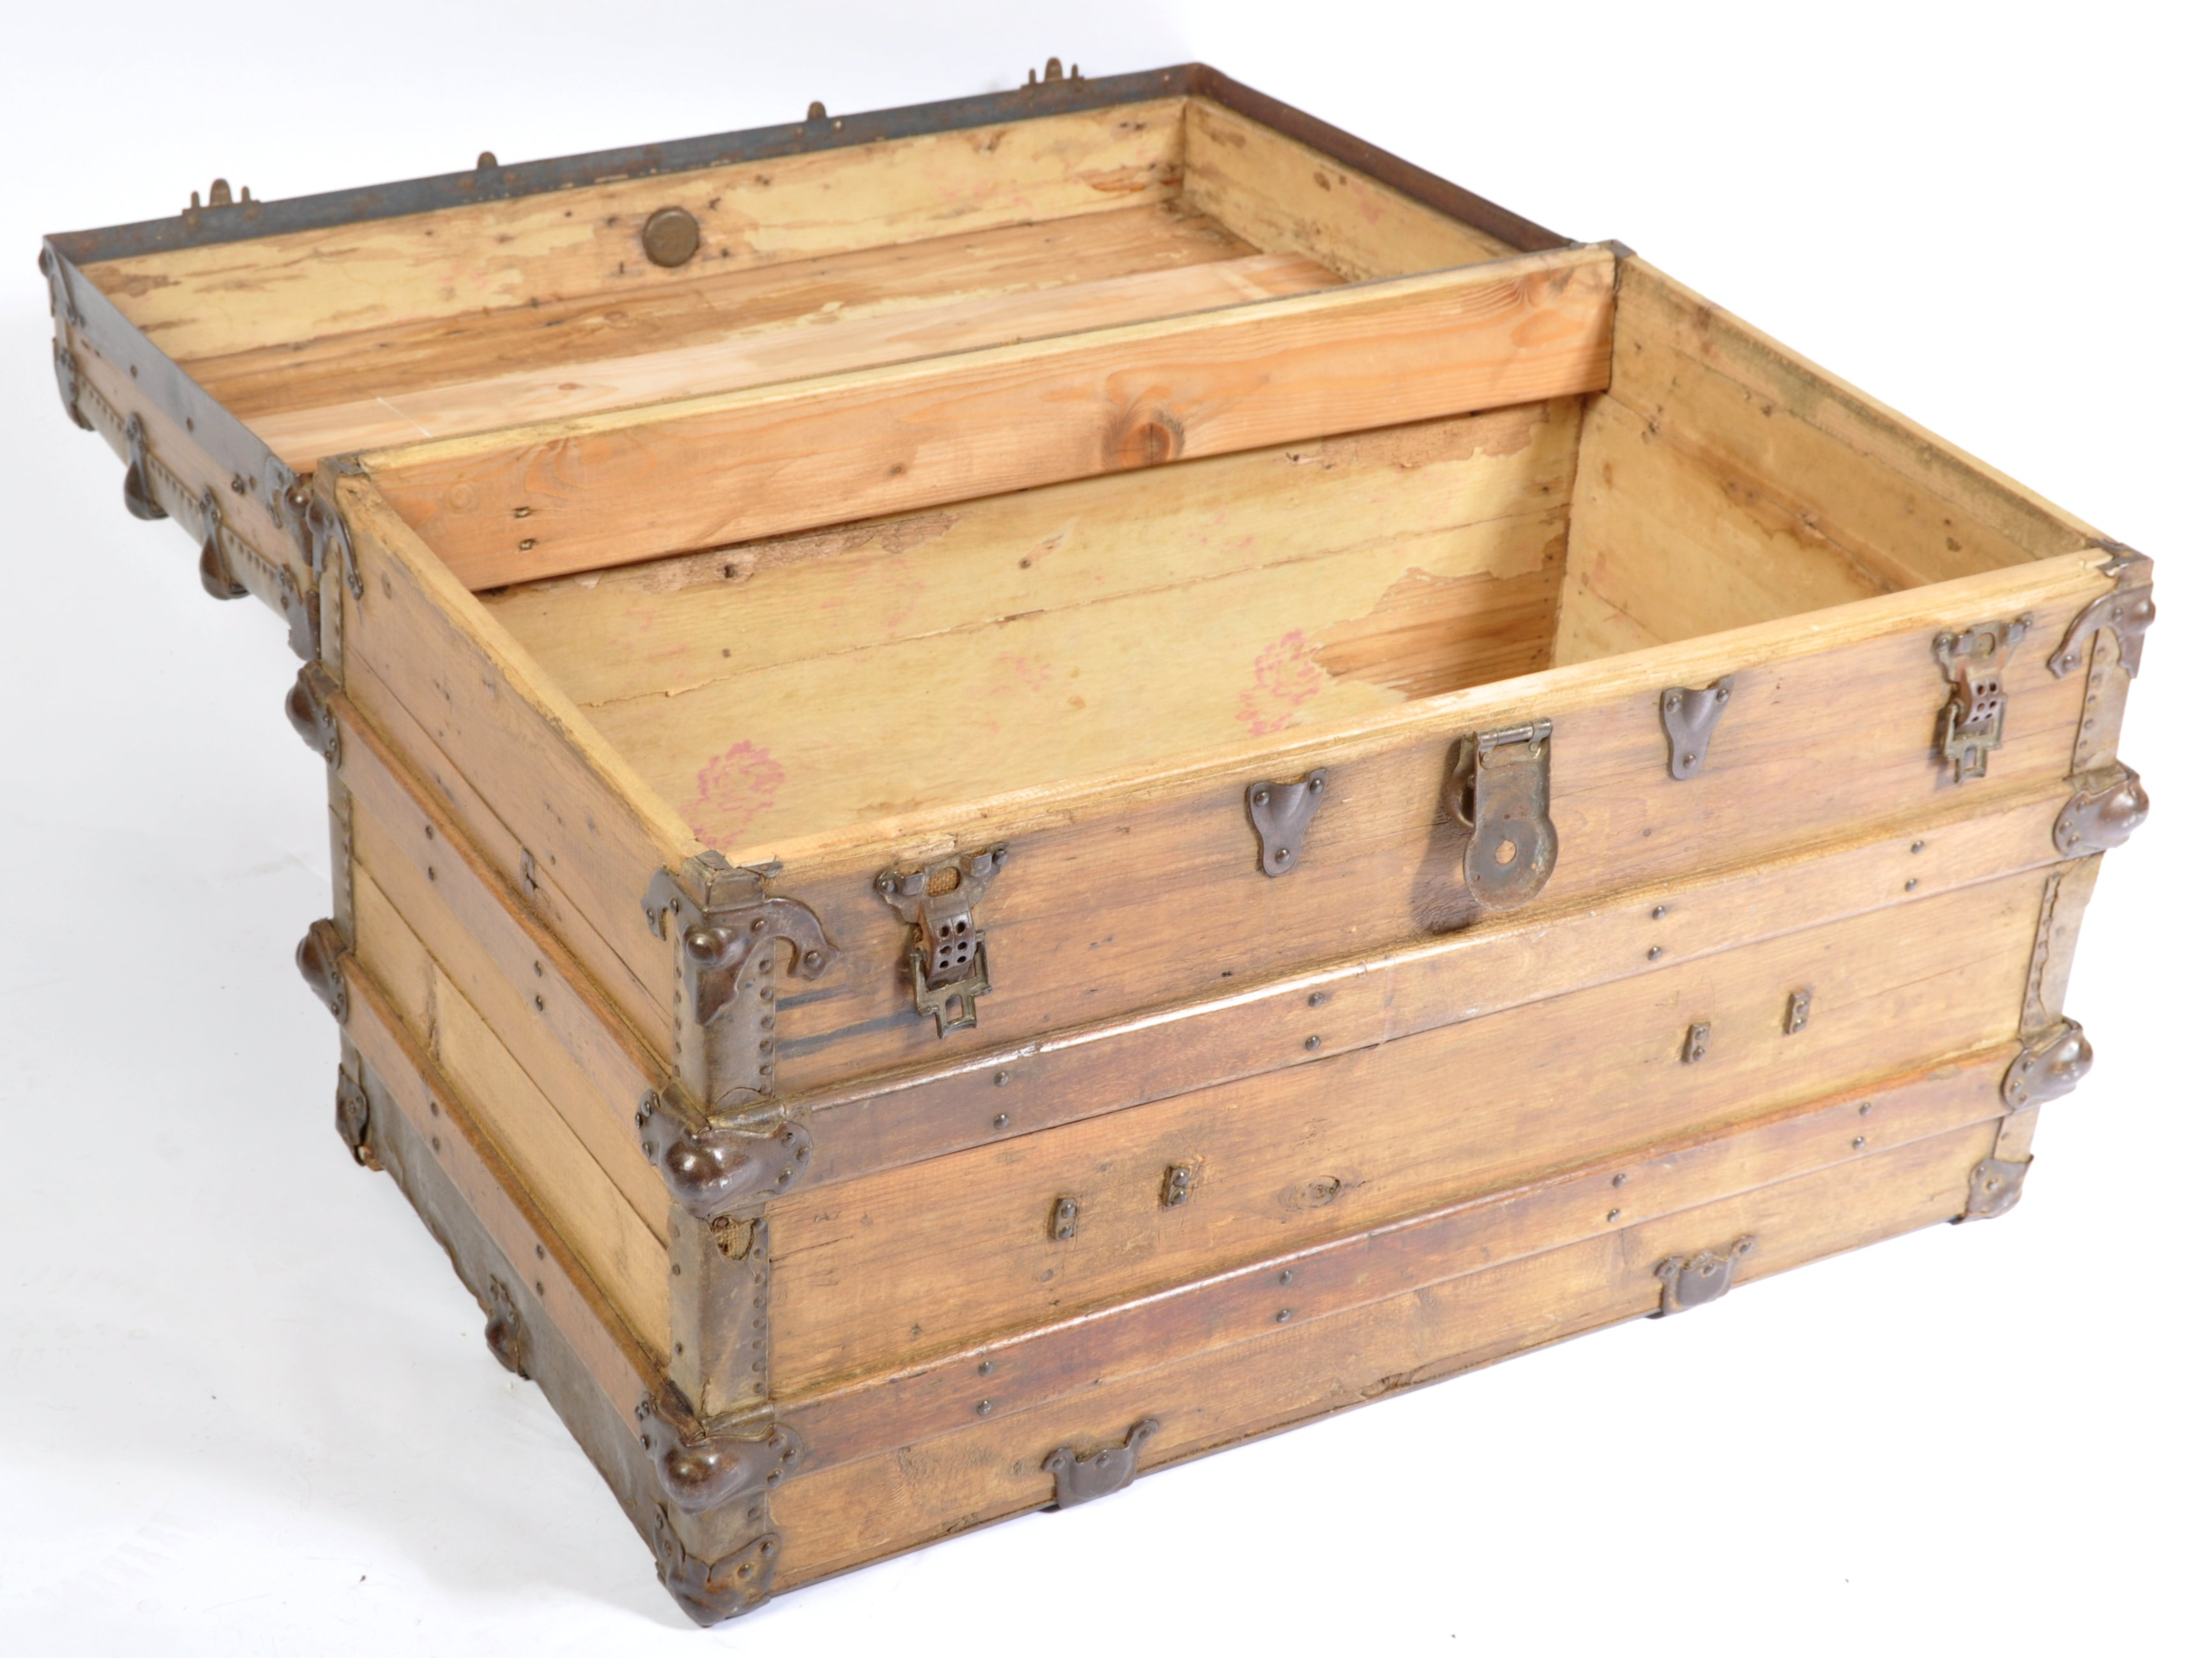 Lot 56 - VINTAGE 20TH CENTURY STAINED PINE AND METAL BOUND TRUNK / CHEST